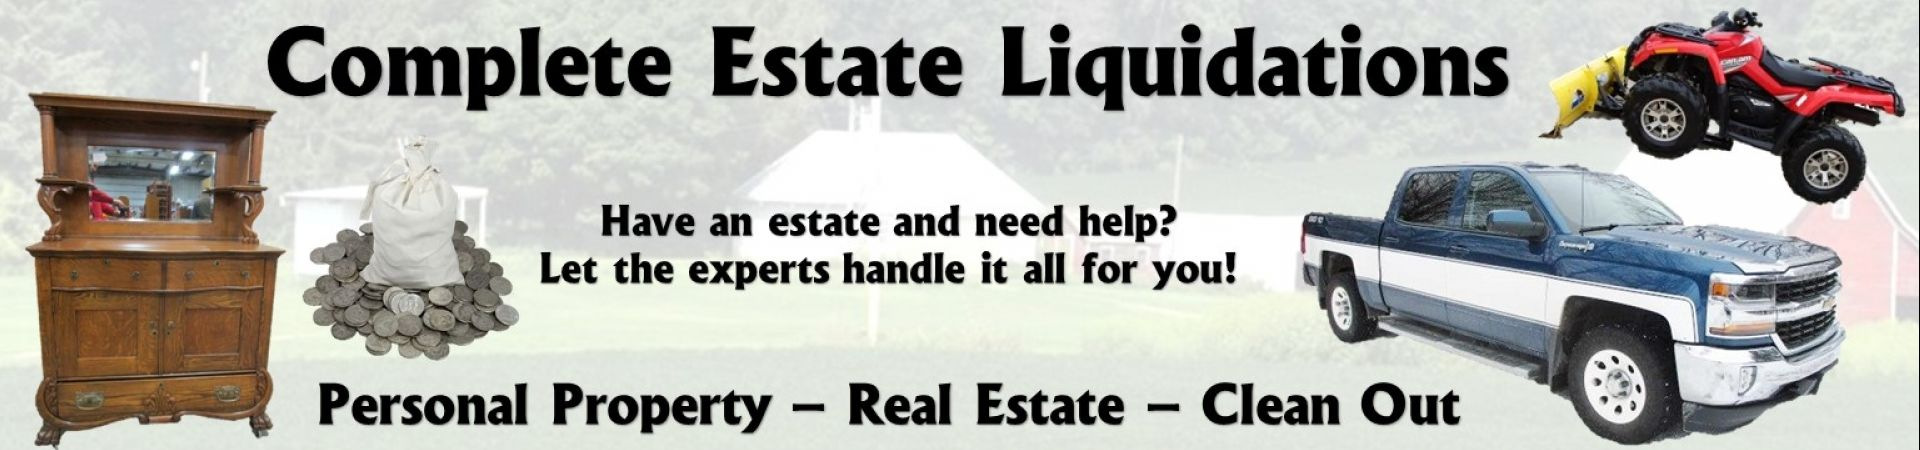 Estate liquidation banner